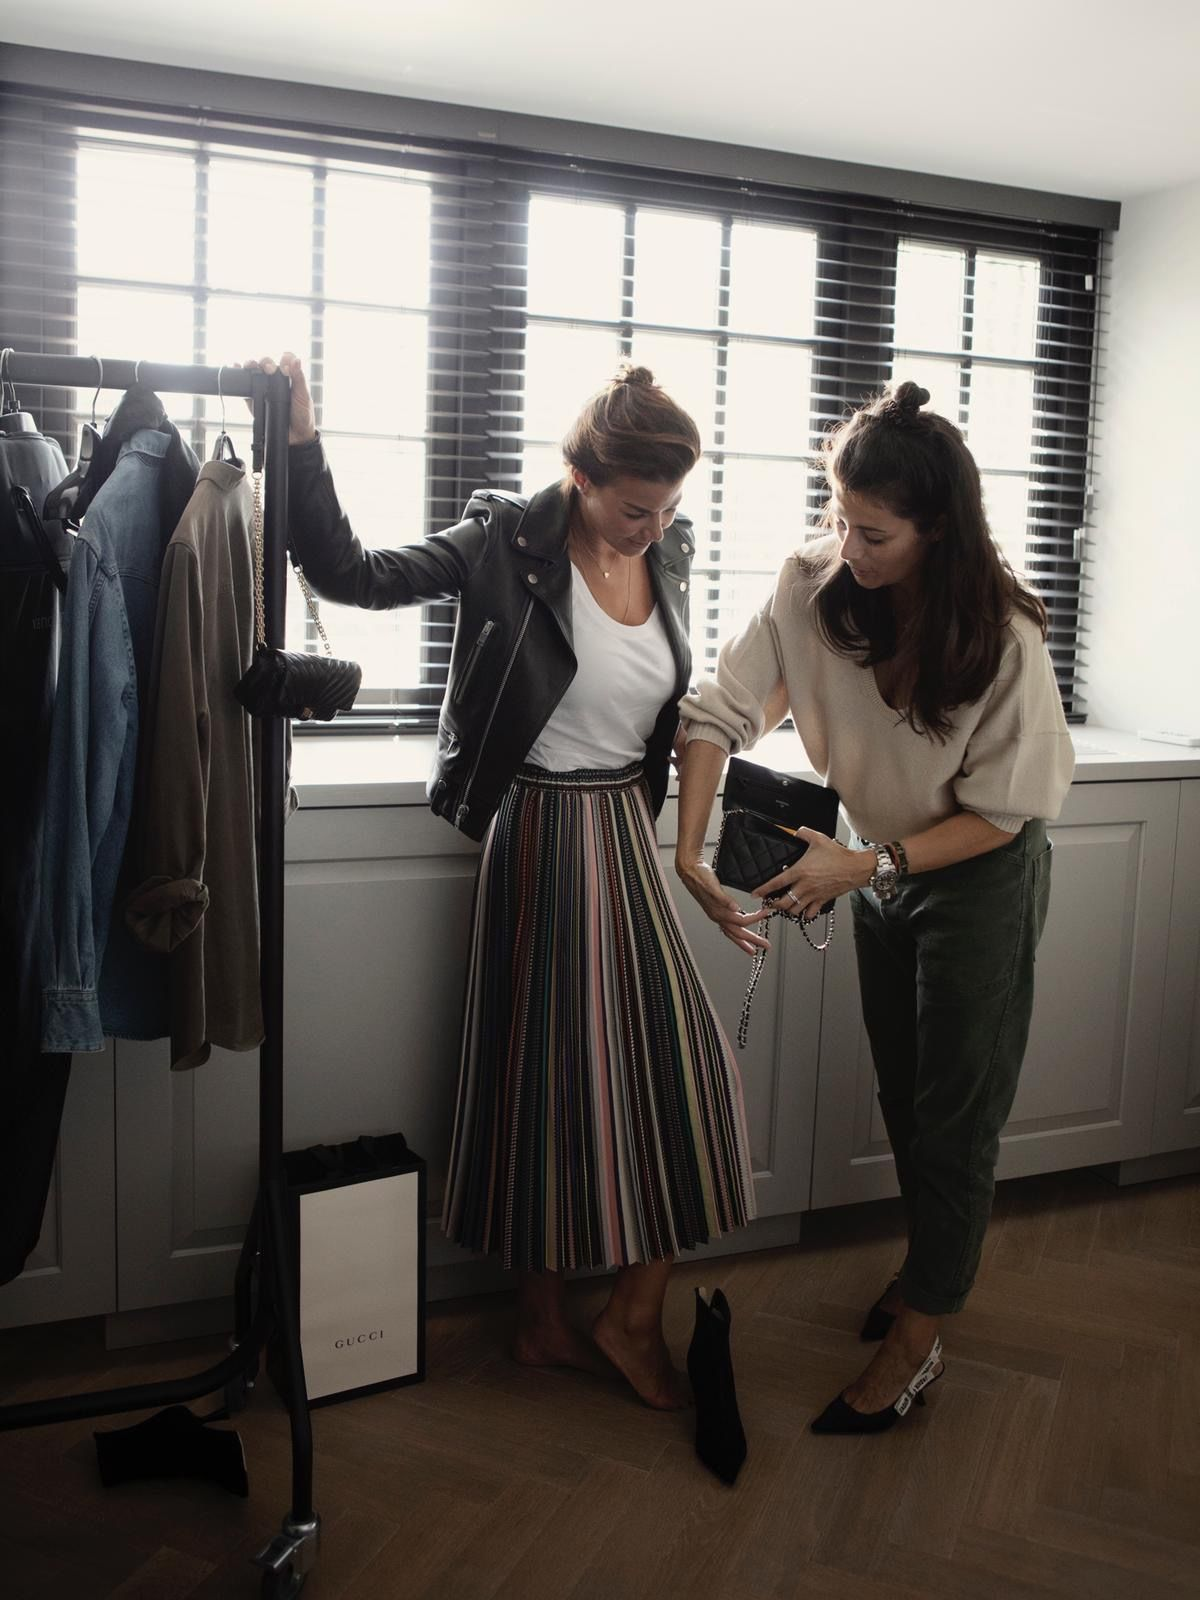 Styling Stories Personal styling stylist nederland Personal shopper brabant Sabrina